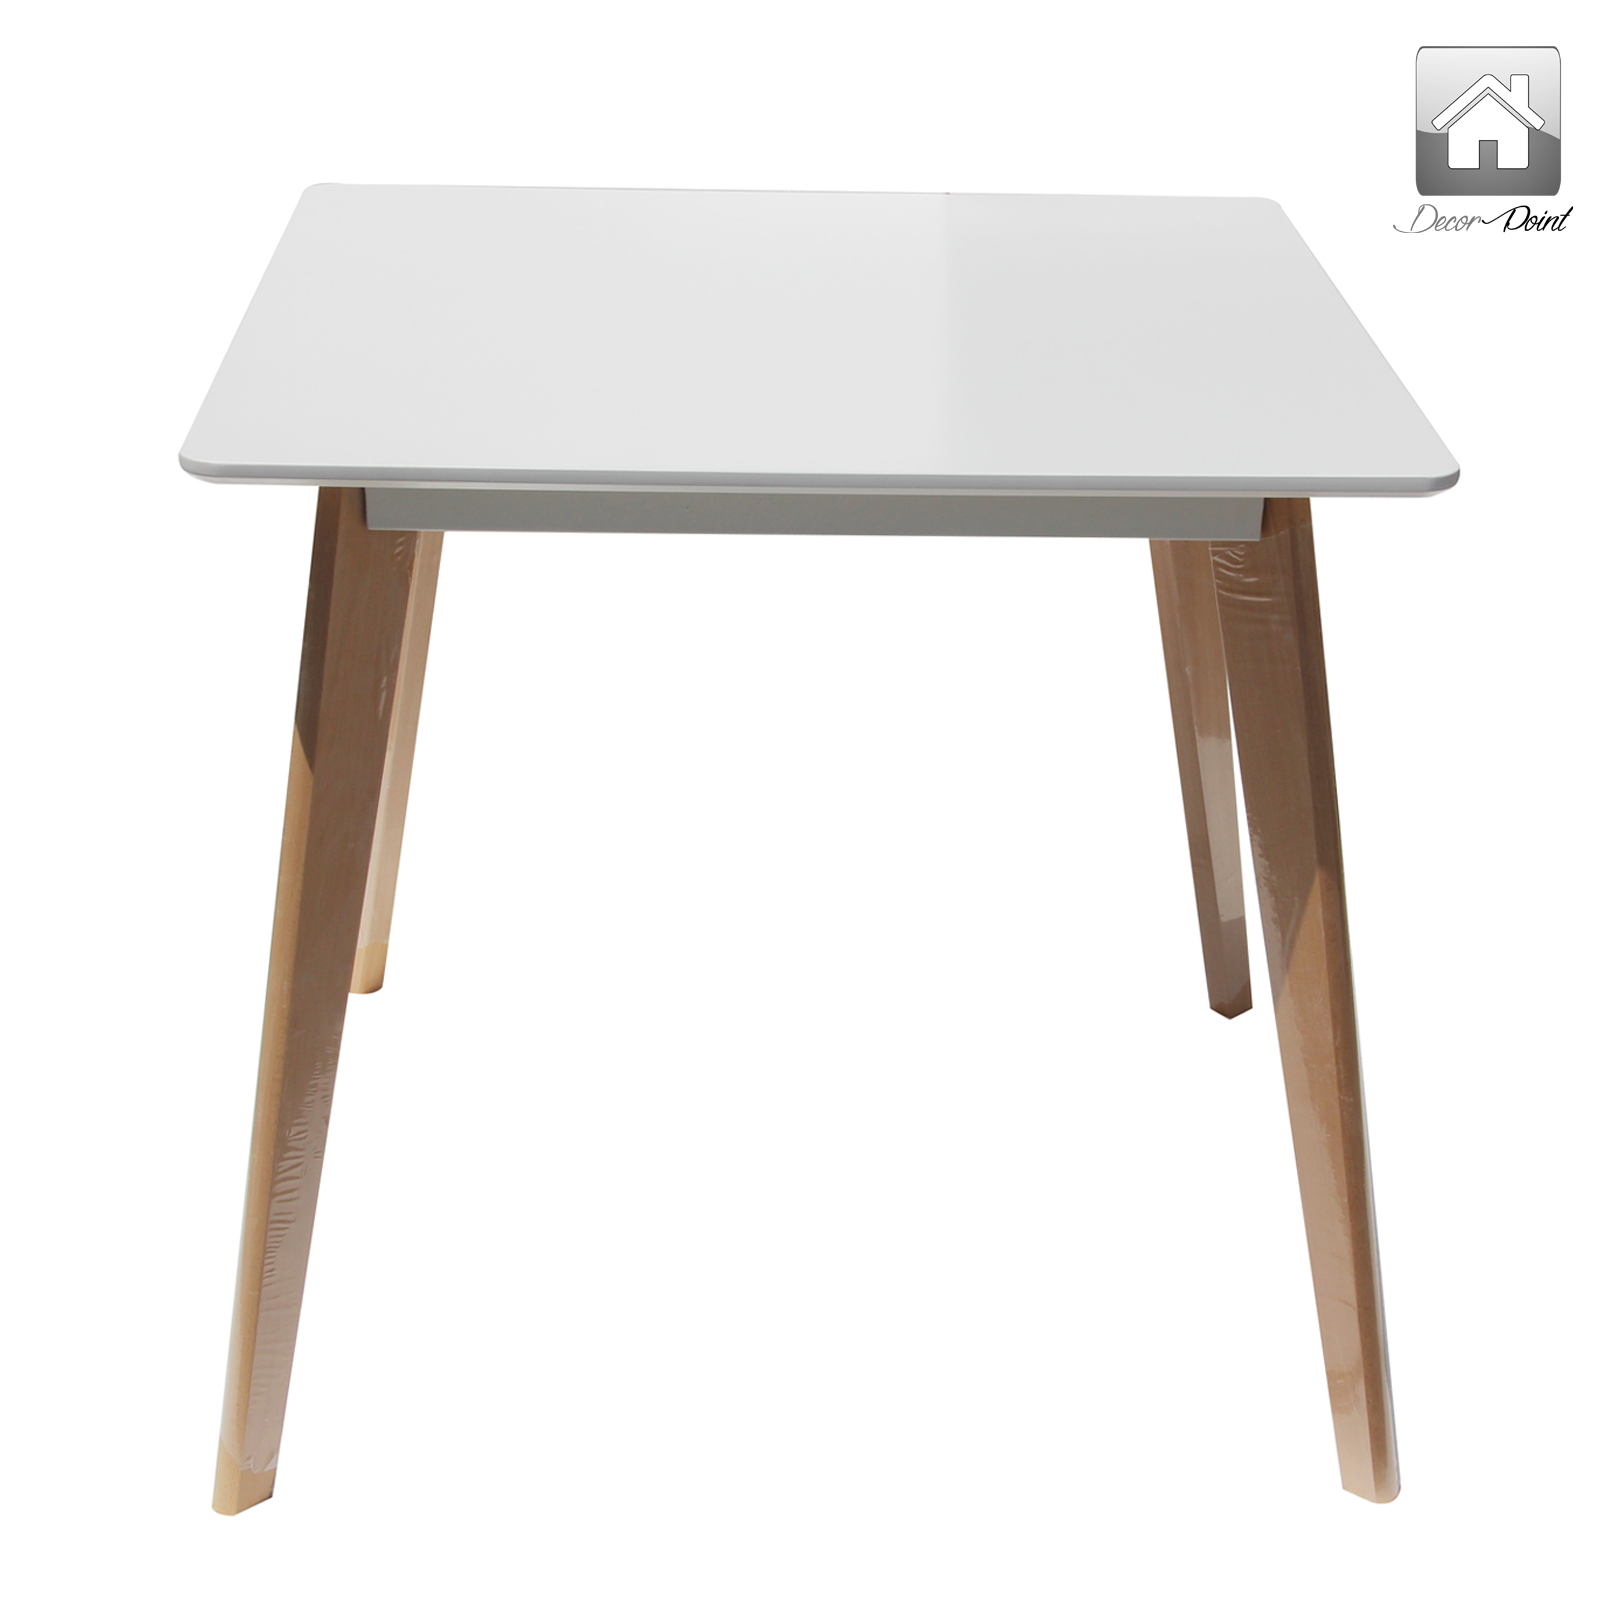 Replica eames dsw city dining table white designer kitchen for Small designer dining table